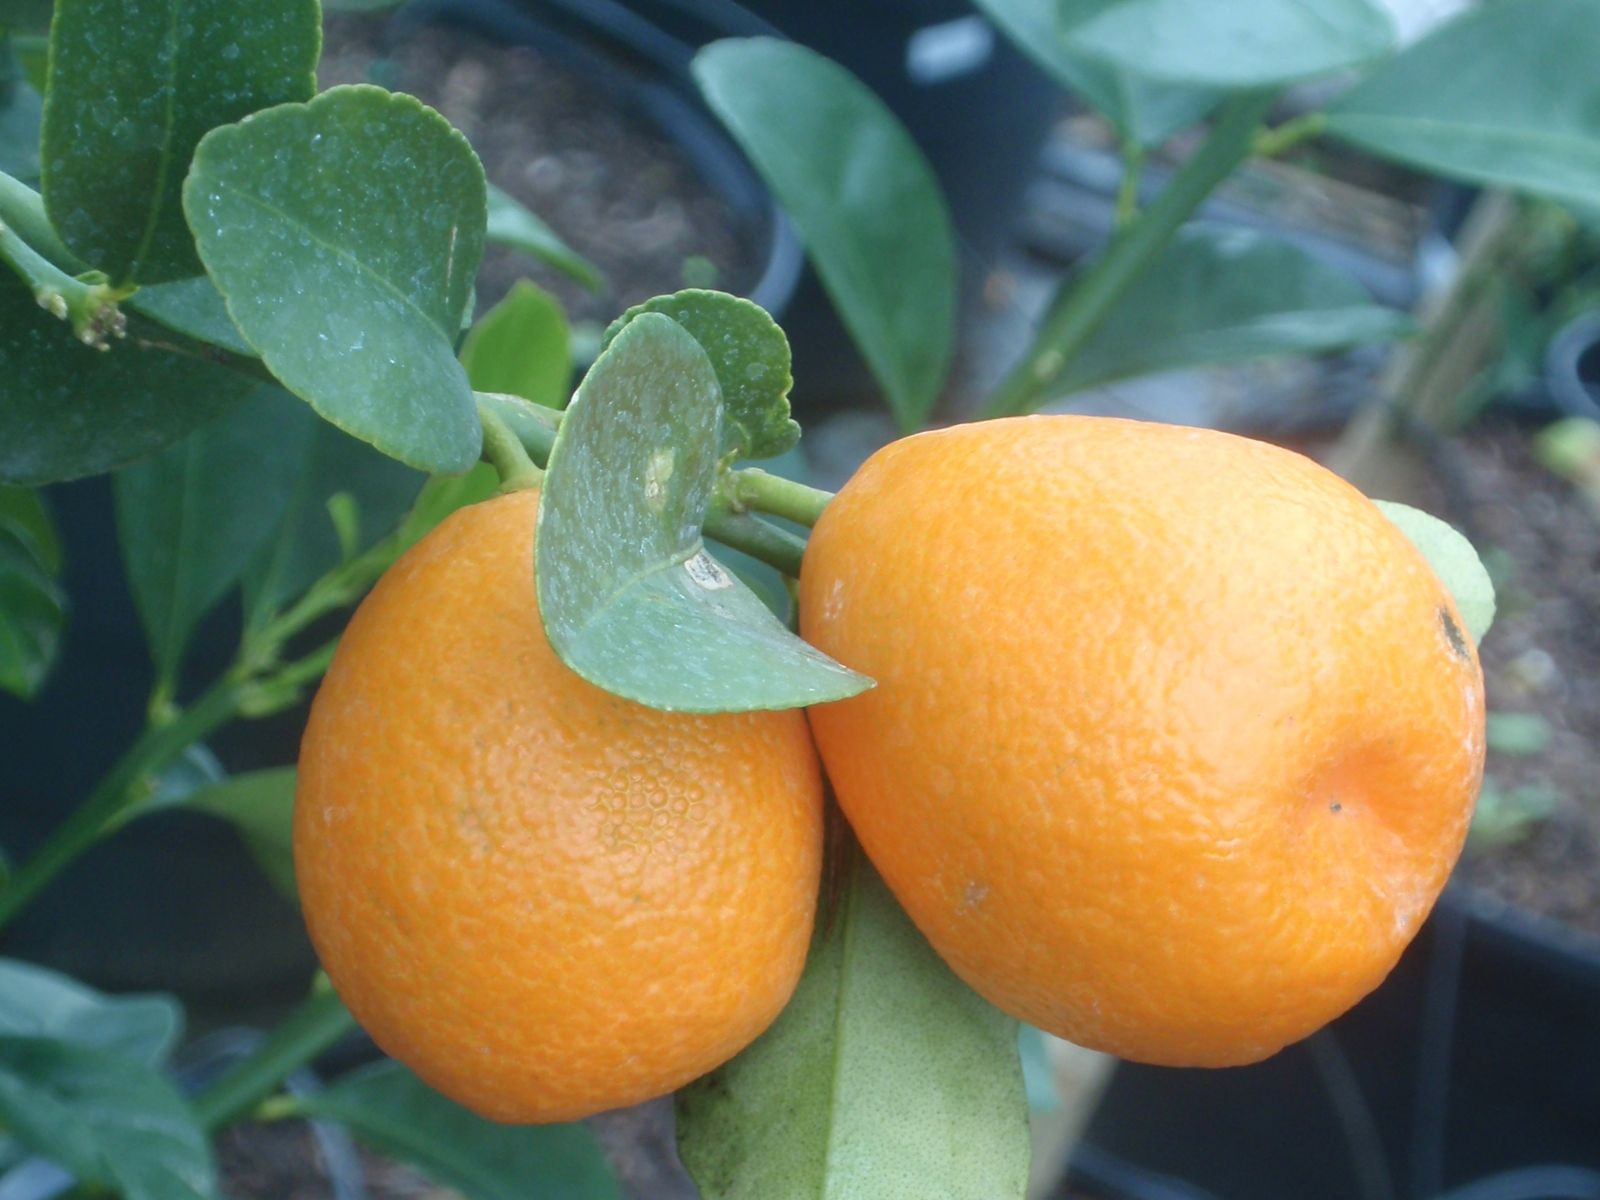 When eaten together, you get a sweet and sour taste which is unlike anything else. Kumquats Citrus Pages